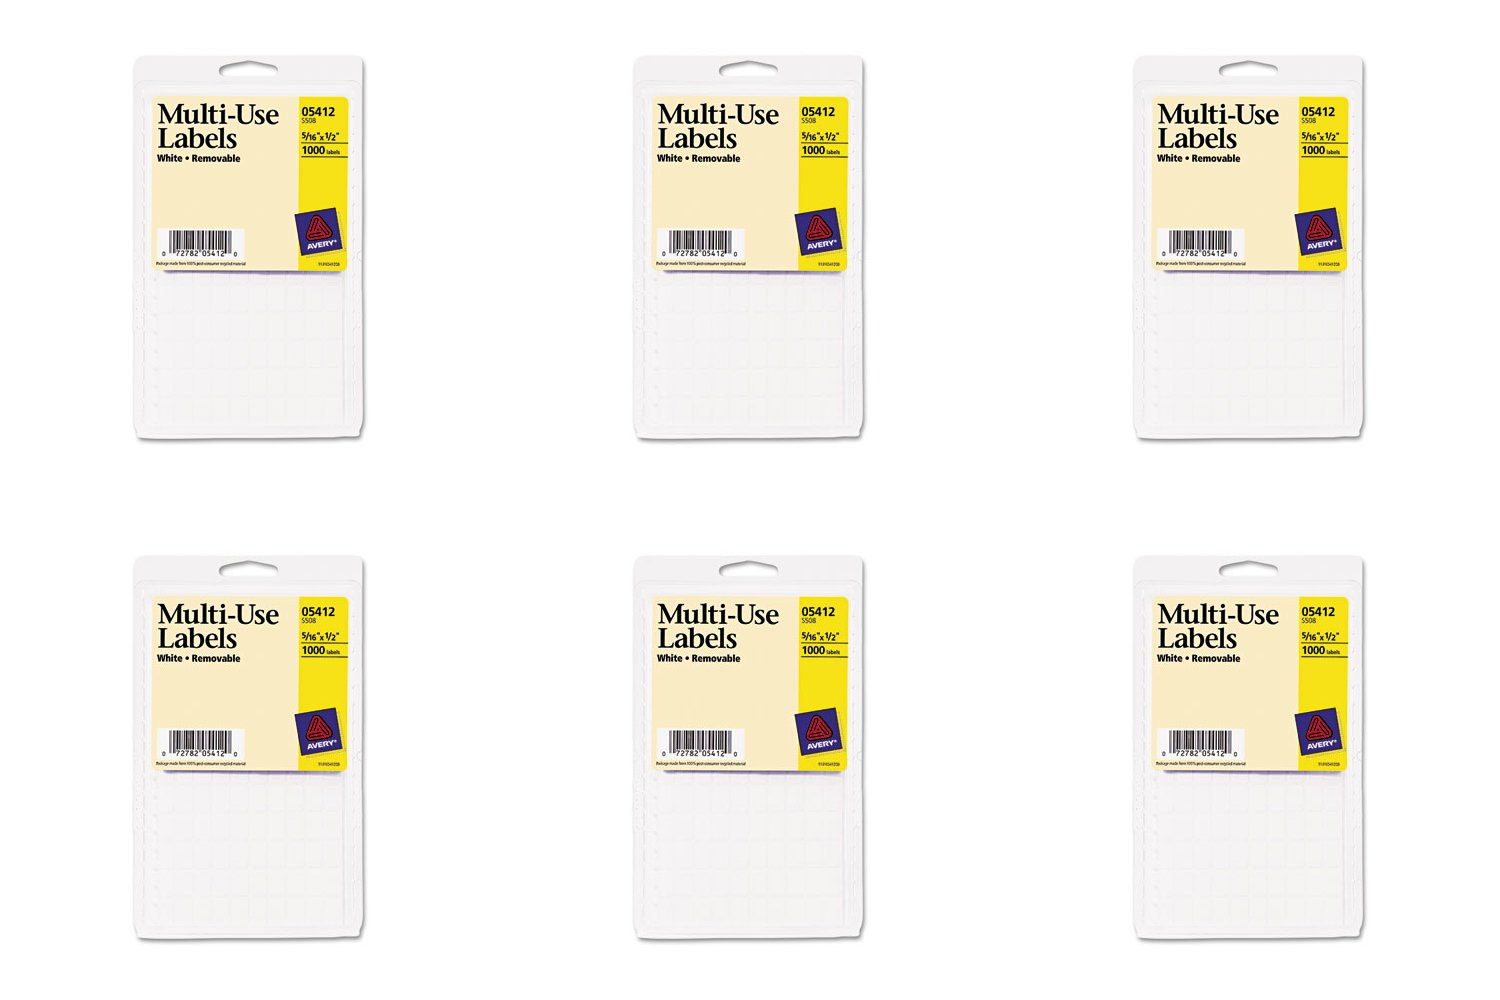 Avery Removable Rectangular Labels, 0.31 x 0.5 Inches, White, Pack of 1100 (5412), 6 Packs by Avery